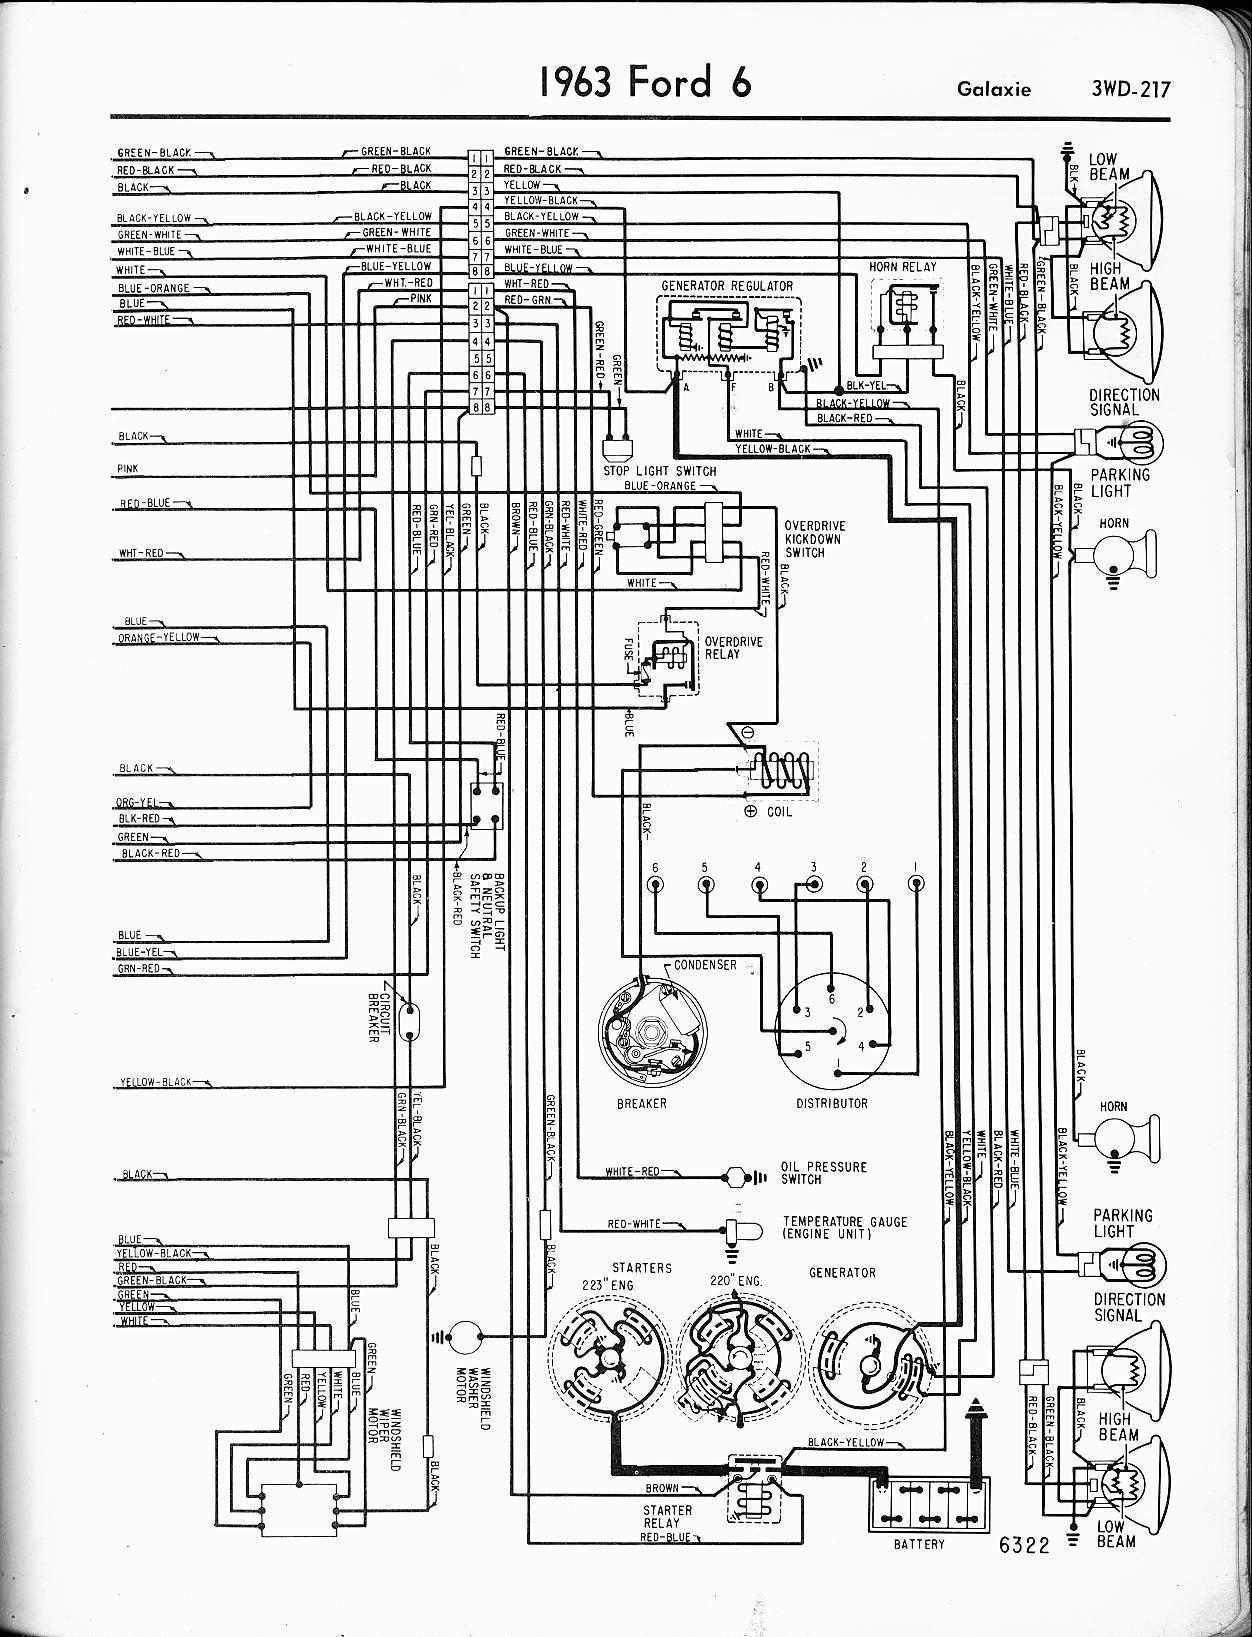 Wiring Diagram 1964 Ford Galaxie Free Download Wiring Diagram